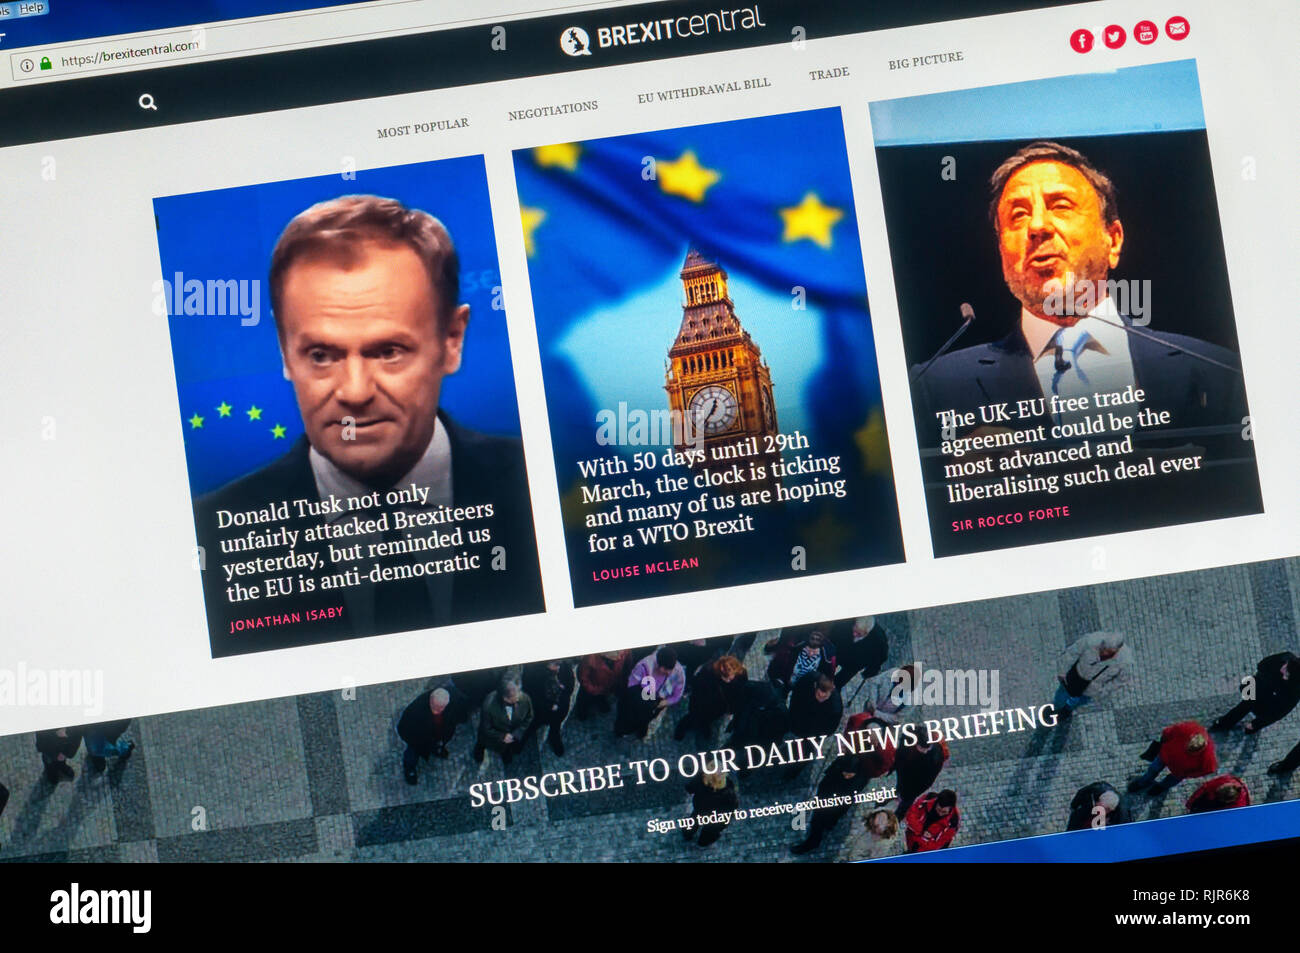 Home page of the pro-Brexit Brexit Central Website. - Stock Image